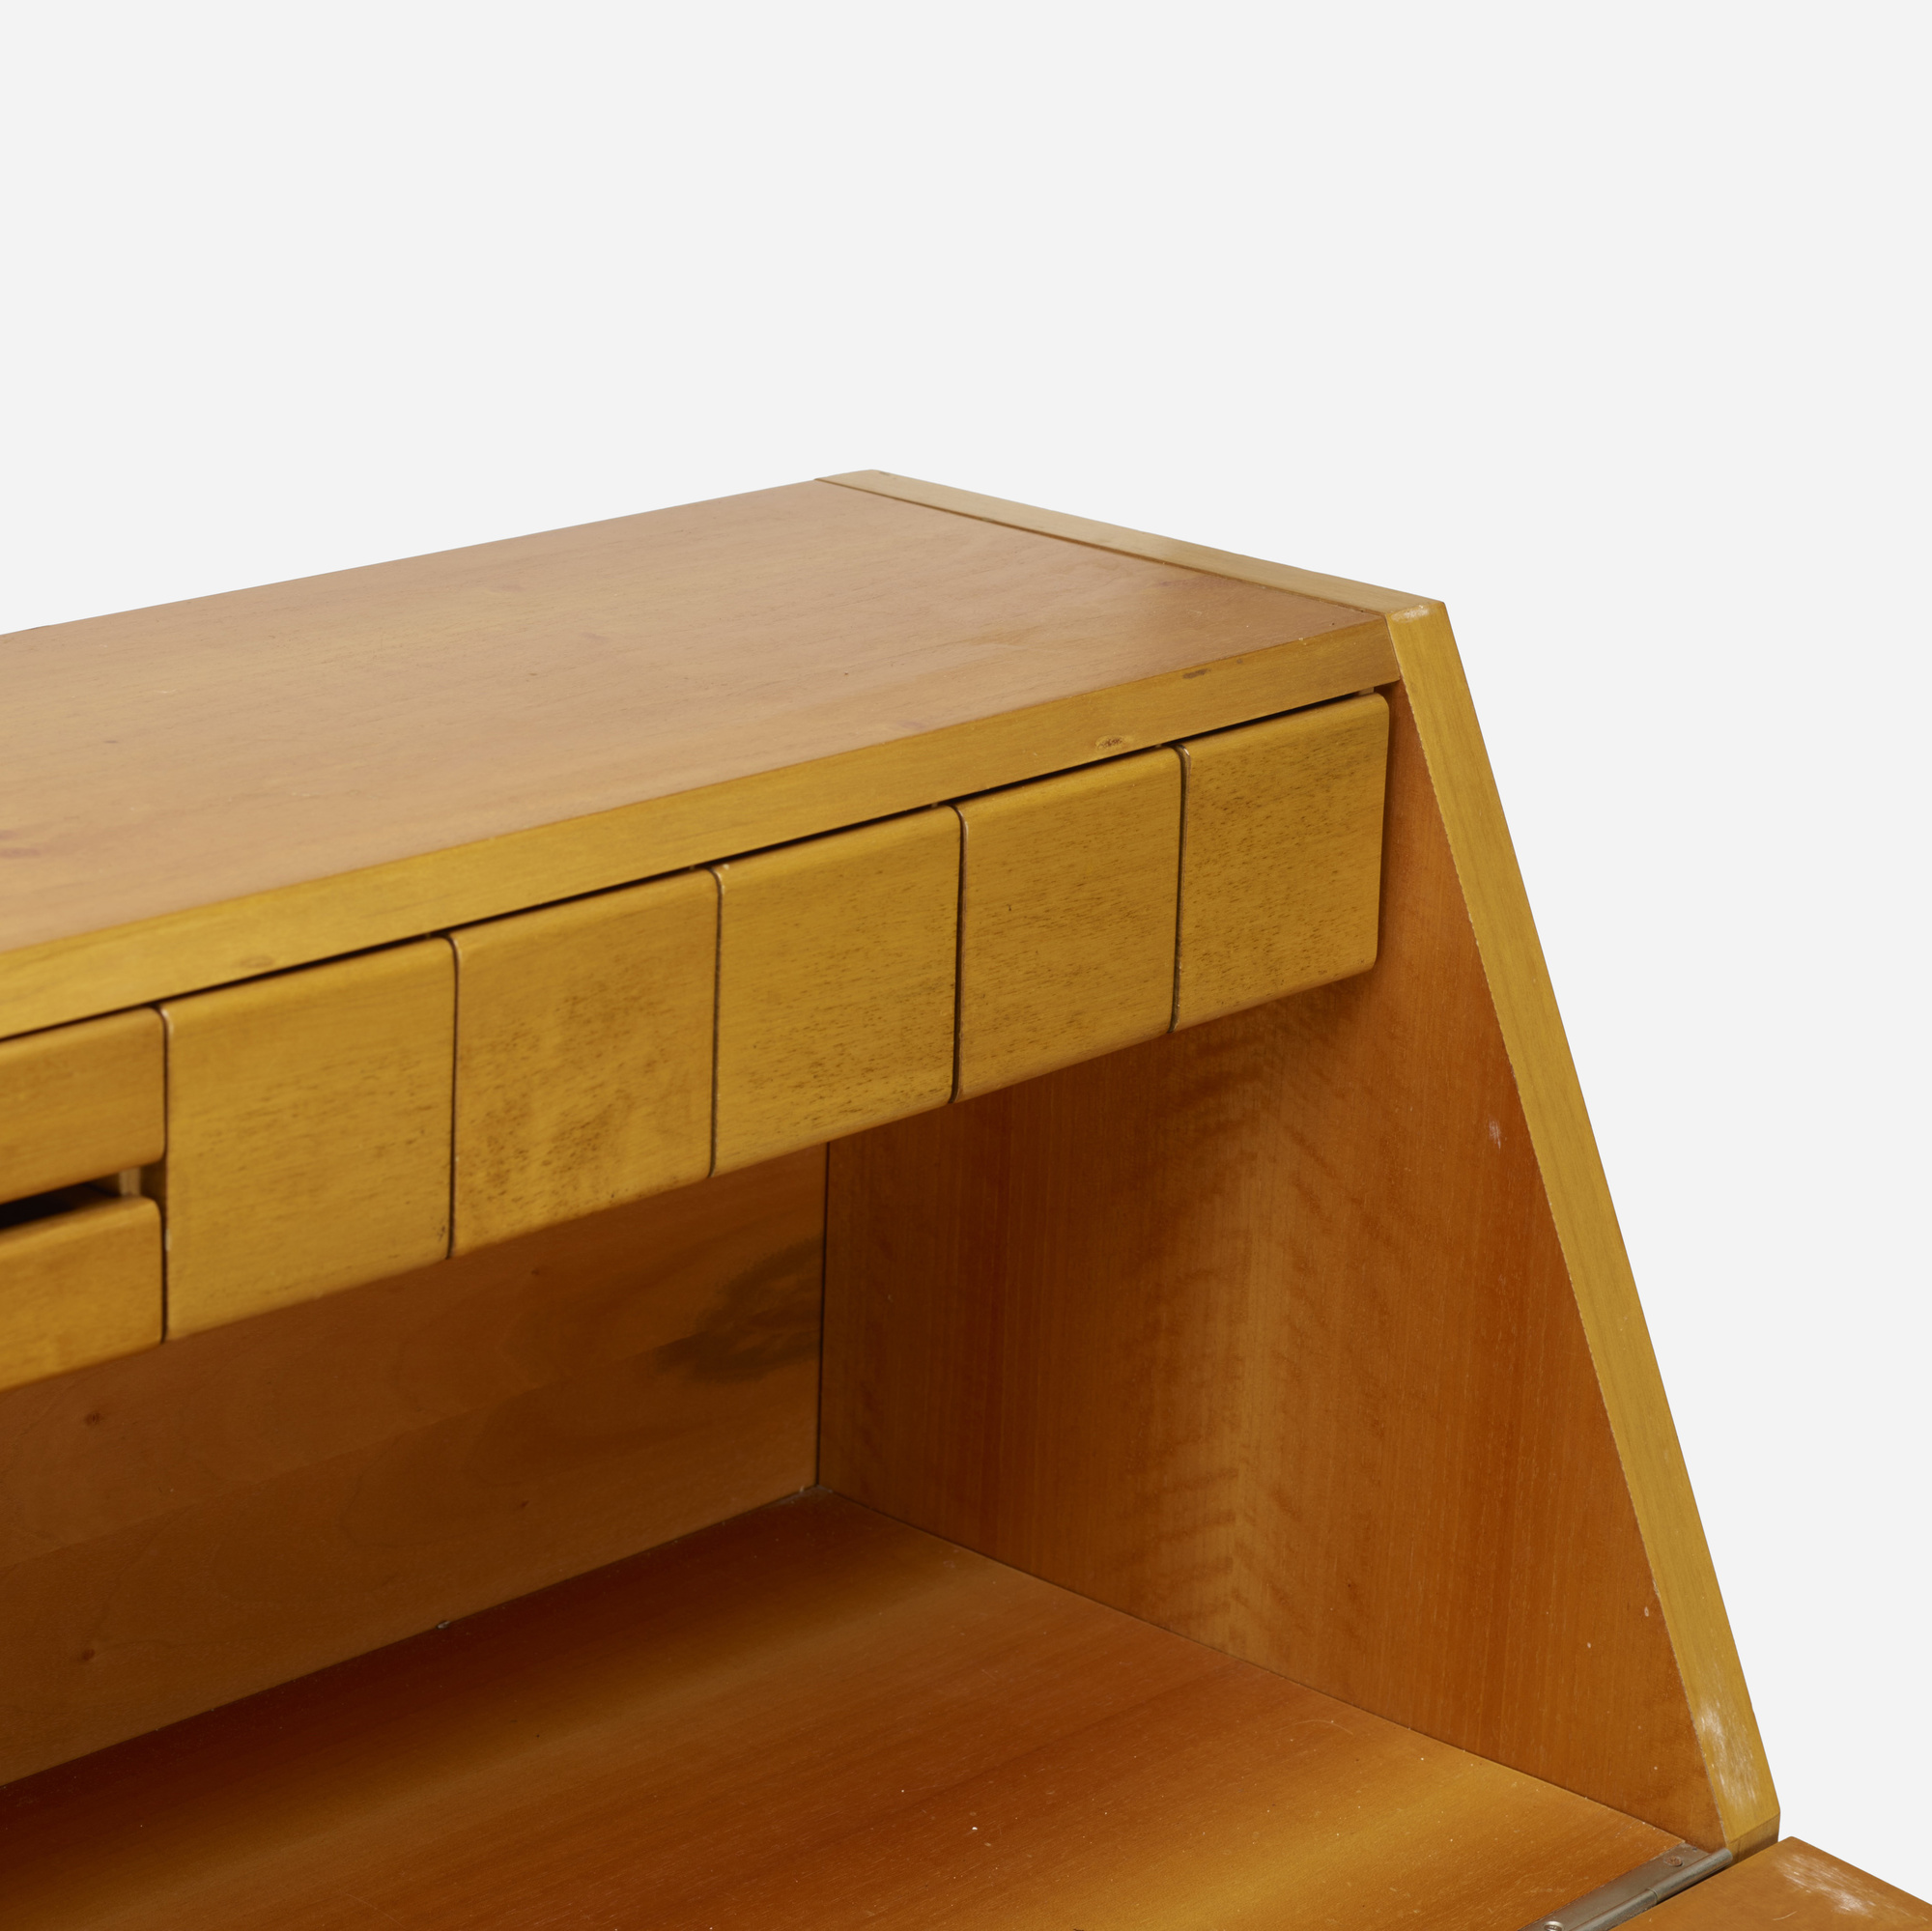 522: Angelo Mangiarotti / desk (3 of 3)